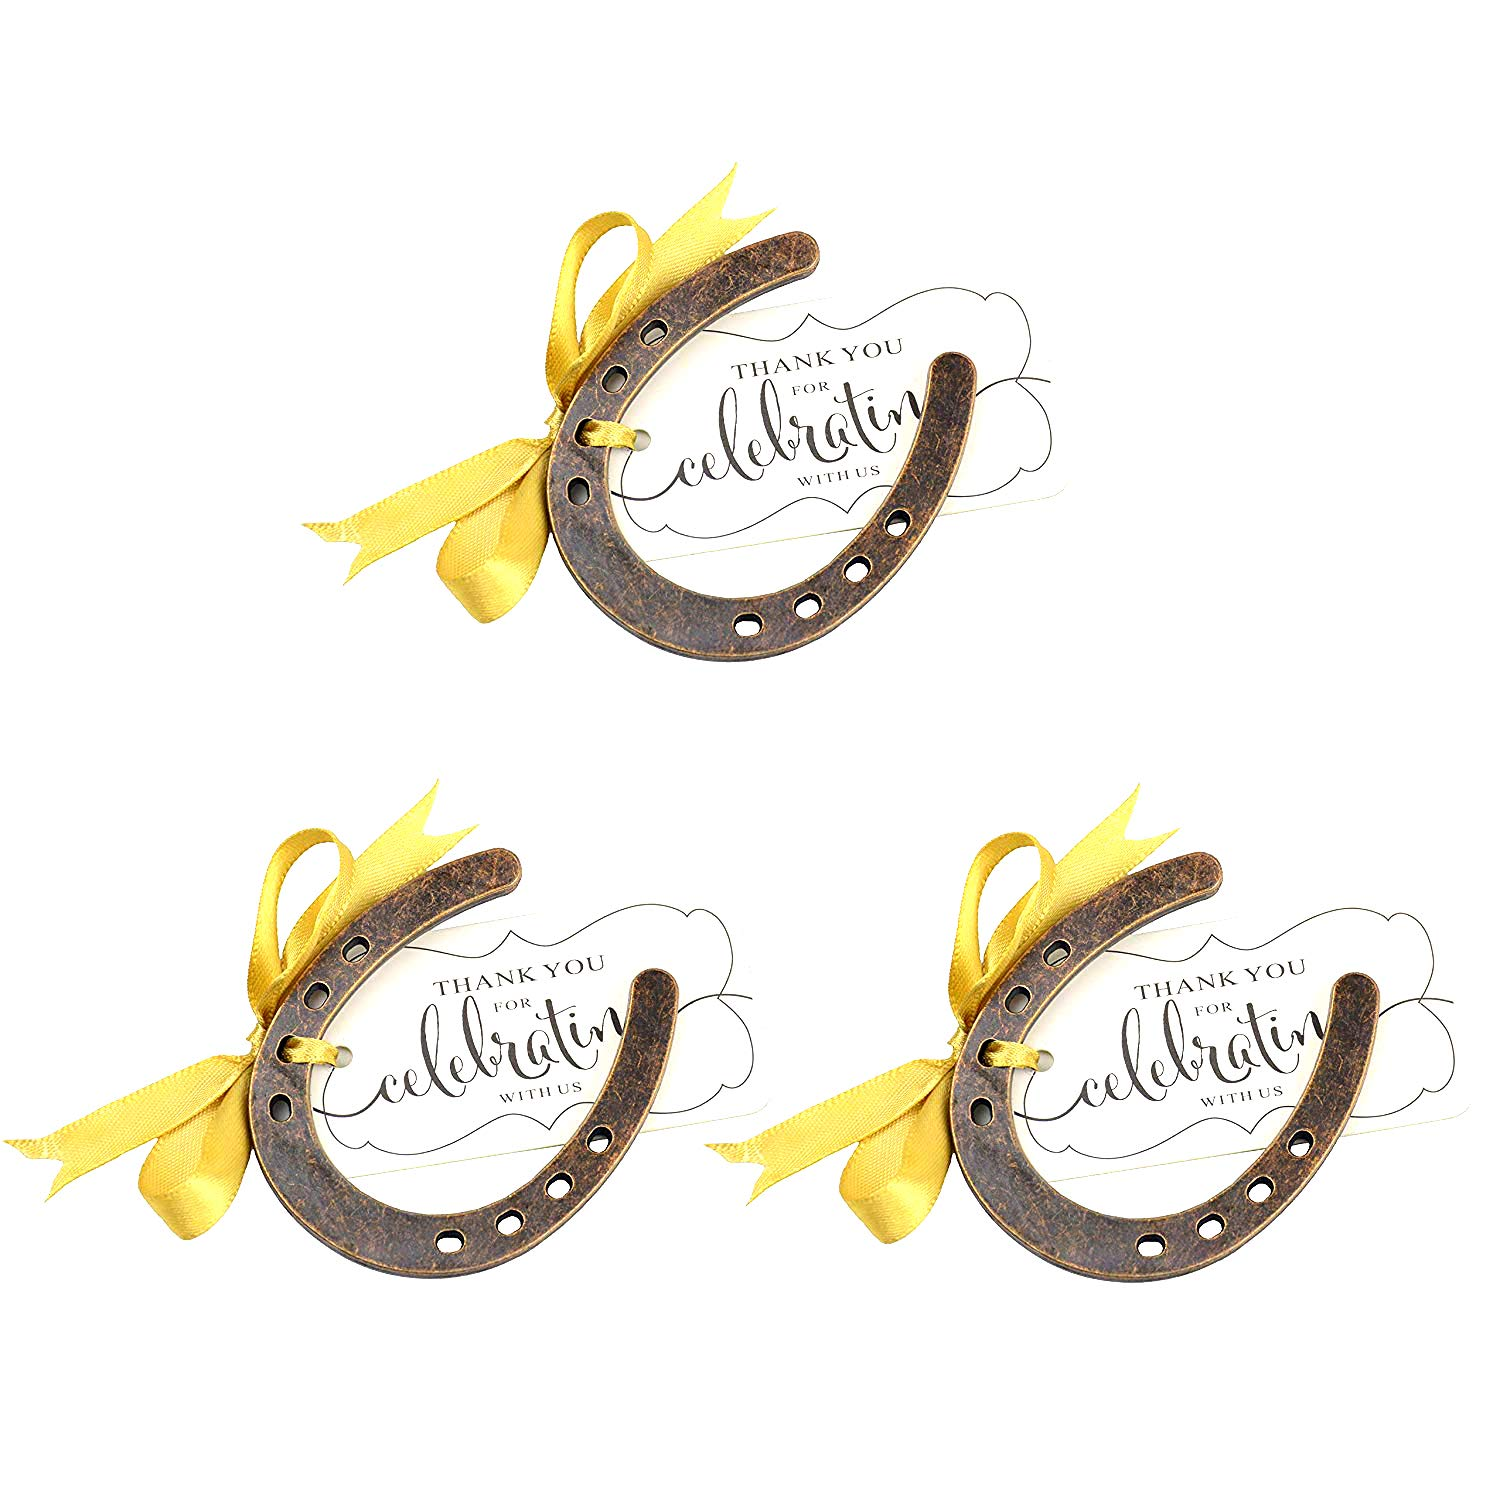 Aokbean 24pcs Lucky Horseshoe Party Favors with Fench Ribbons and Stand for Rustic Wedding Baby Shower Decoration Barn Wedding Christmas Santa Horseshoe Tree and Thank You Place Card for Party Gift